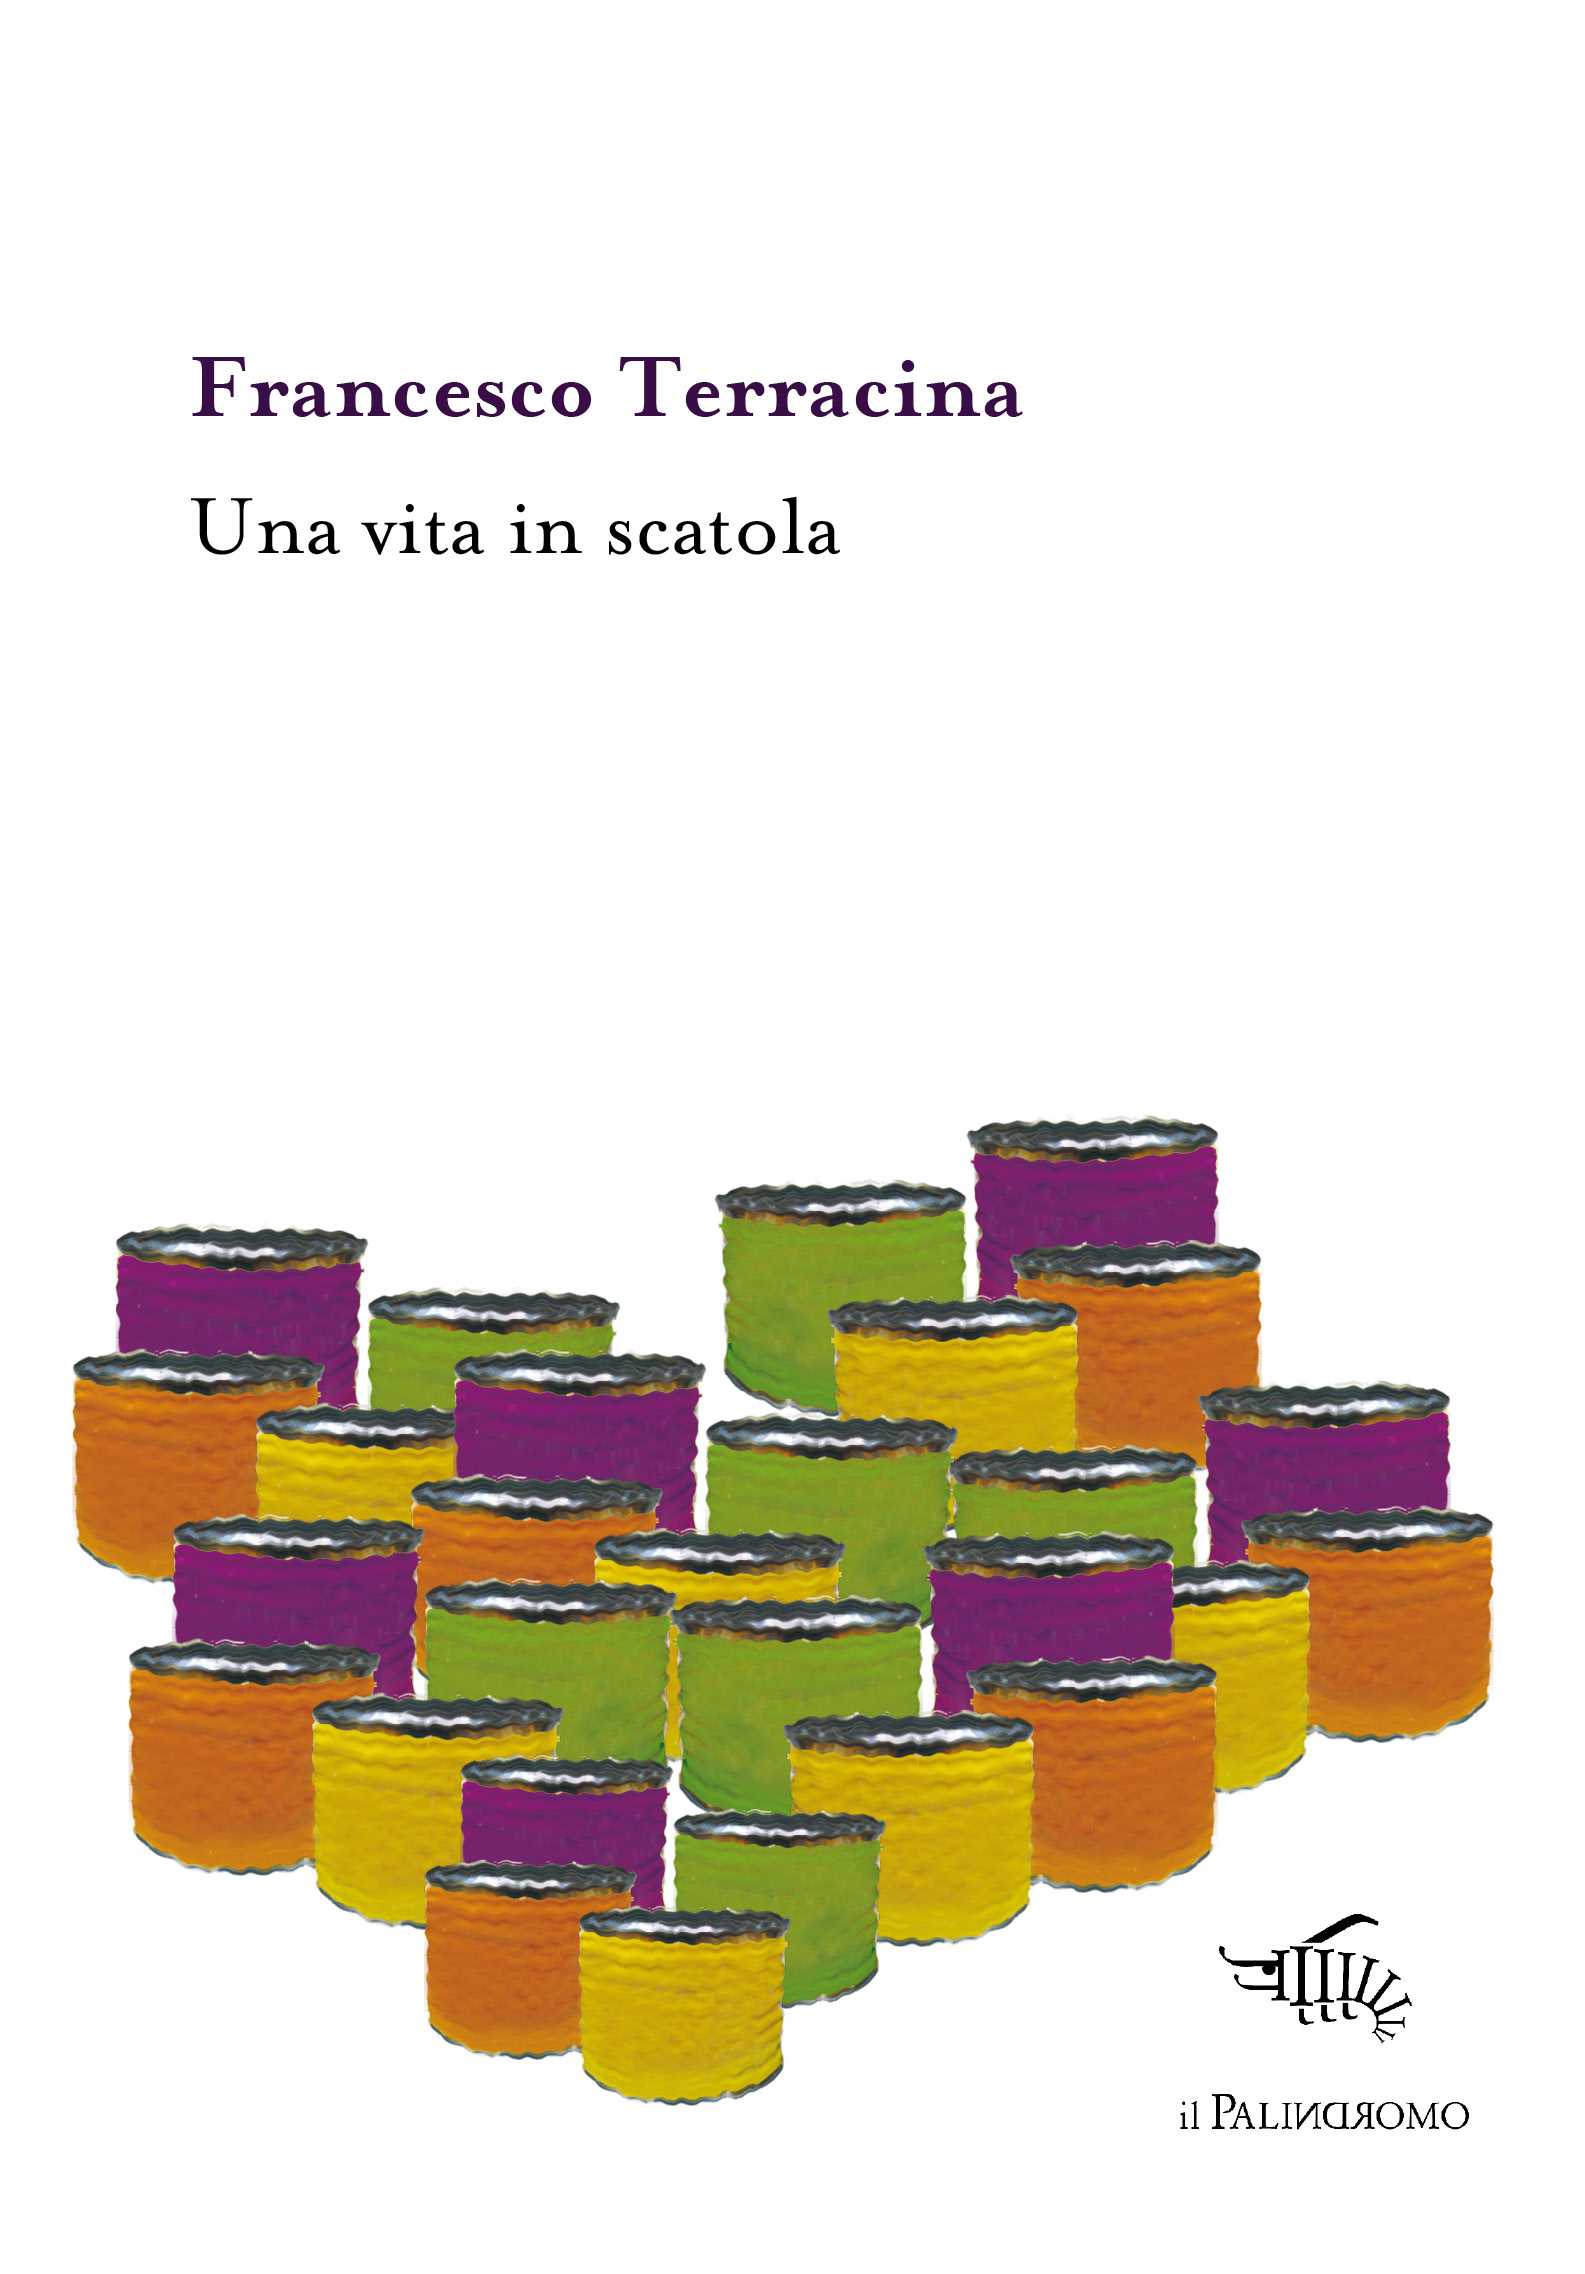 Autore: Francesco Terracina